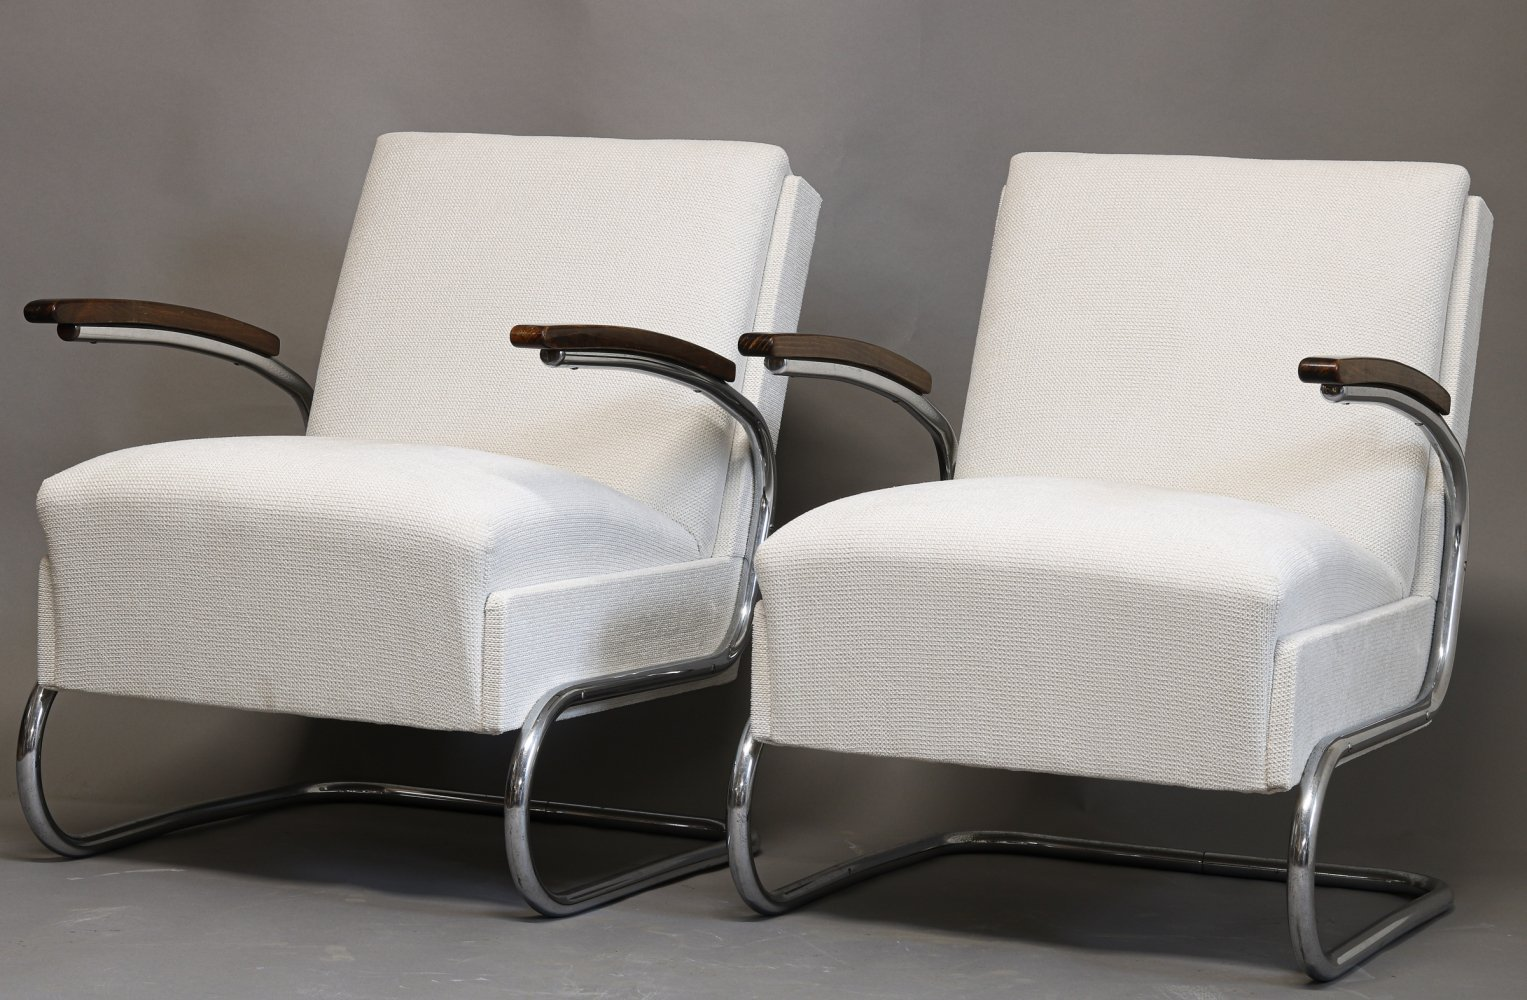 Pair of arm chairs by Marcel Breuer for Mücke Melder, 1930s